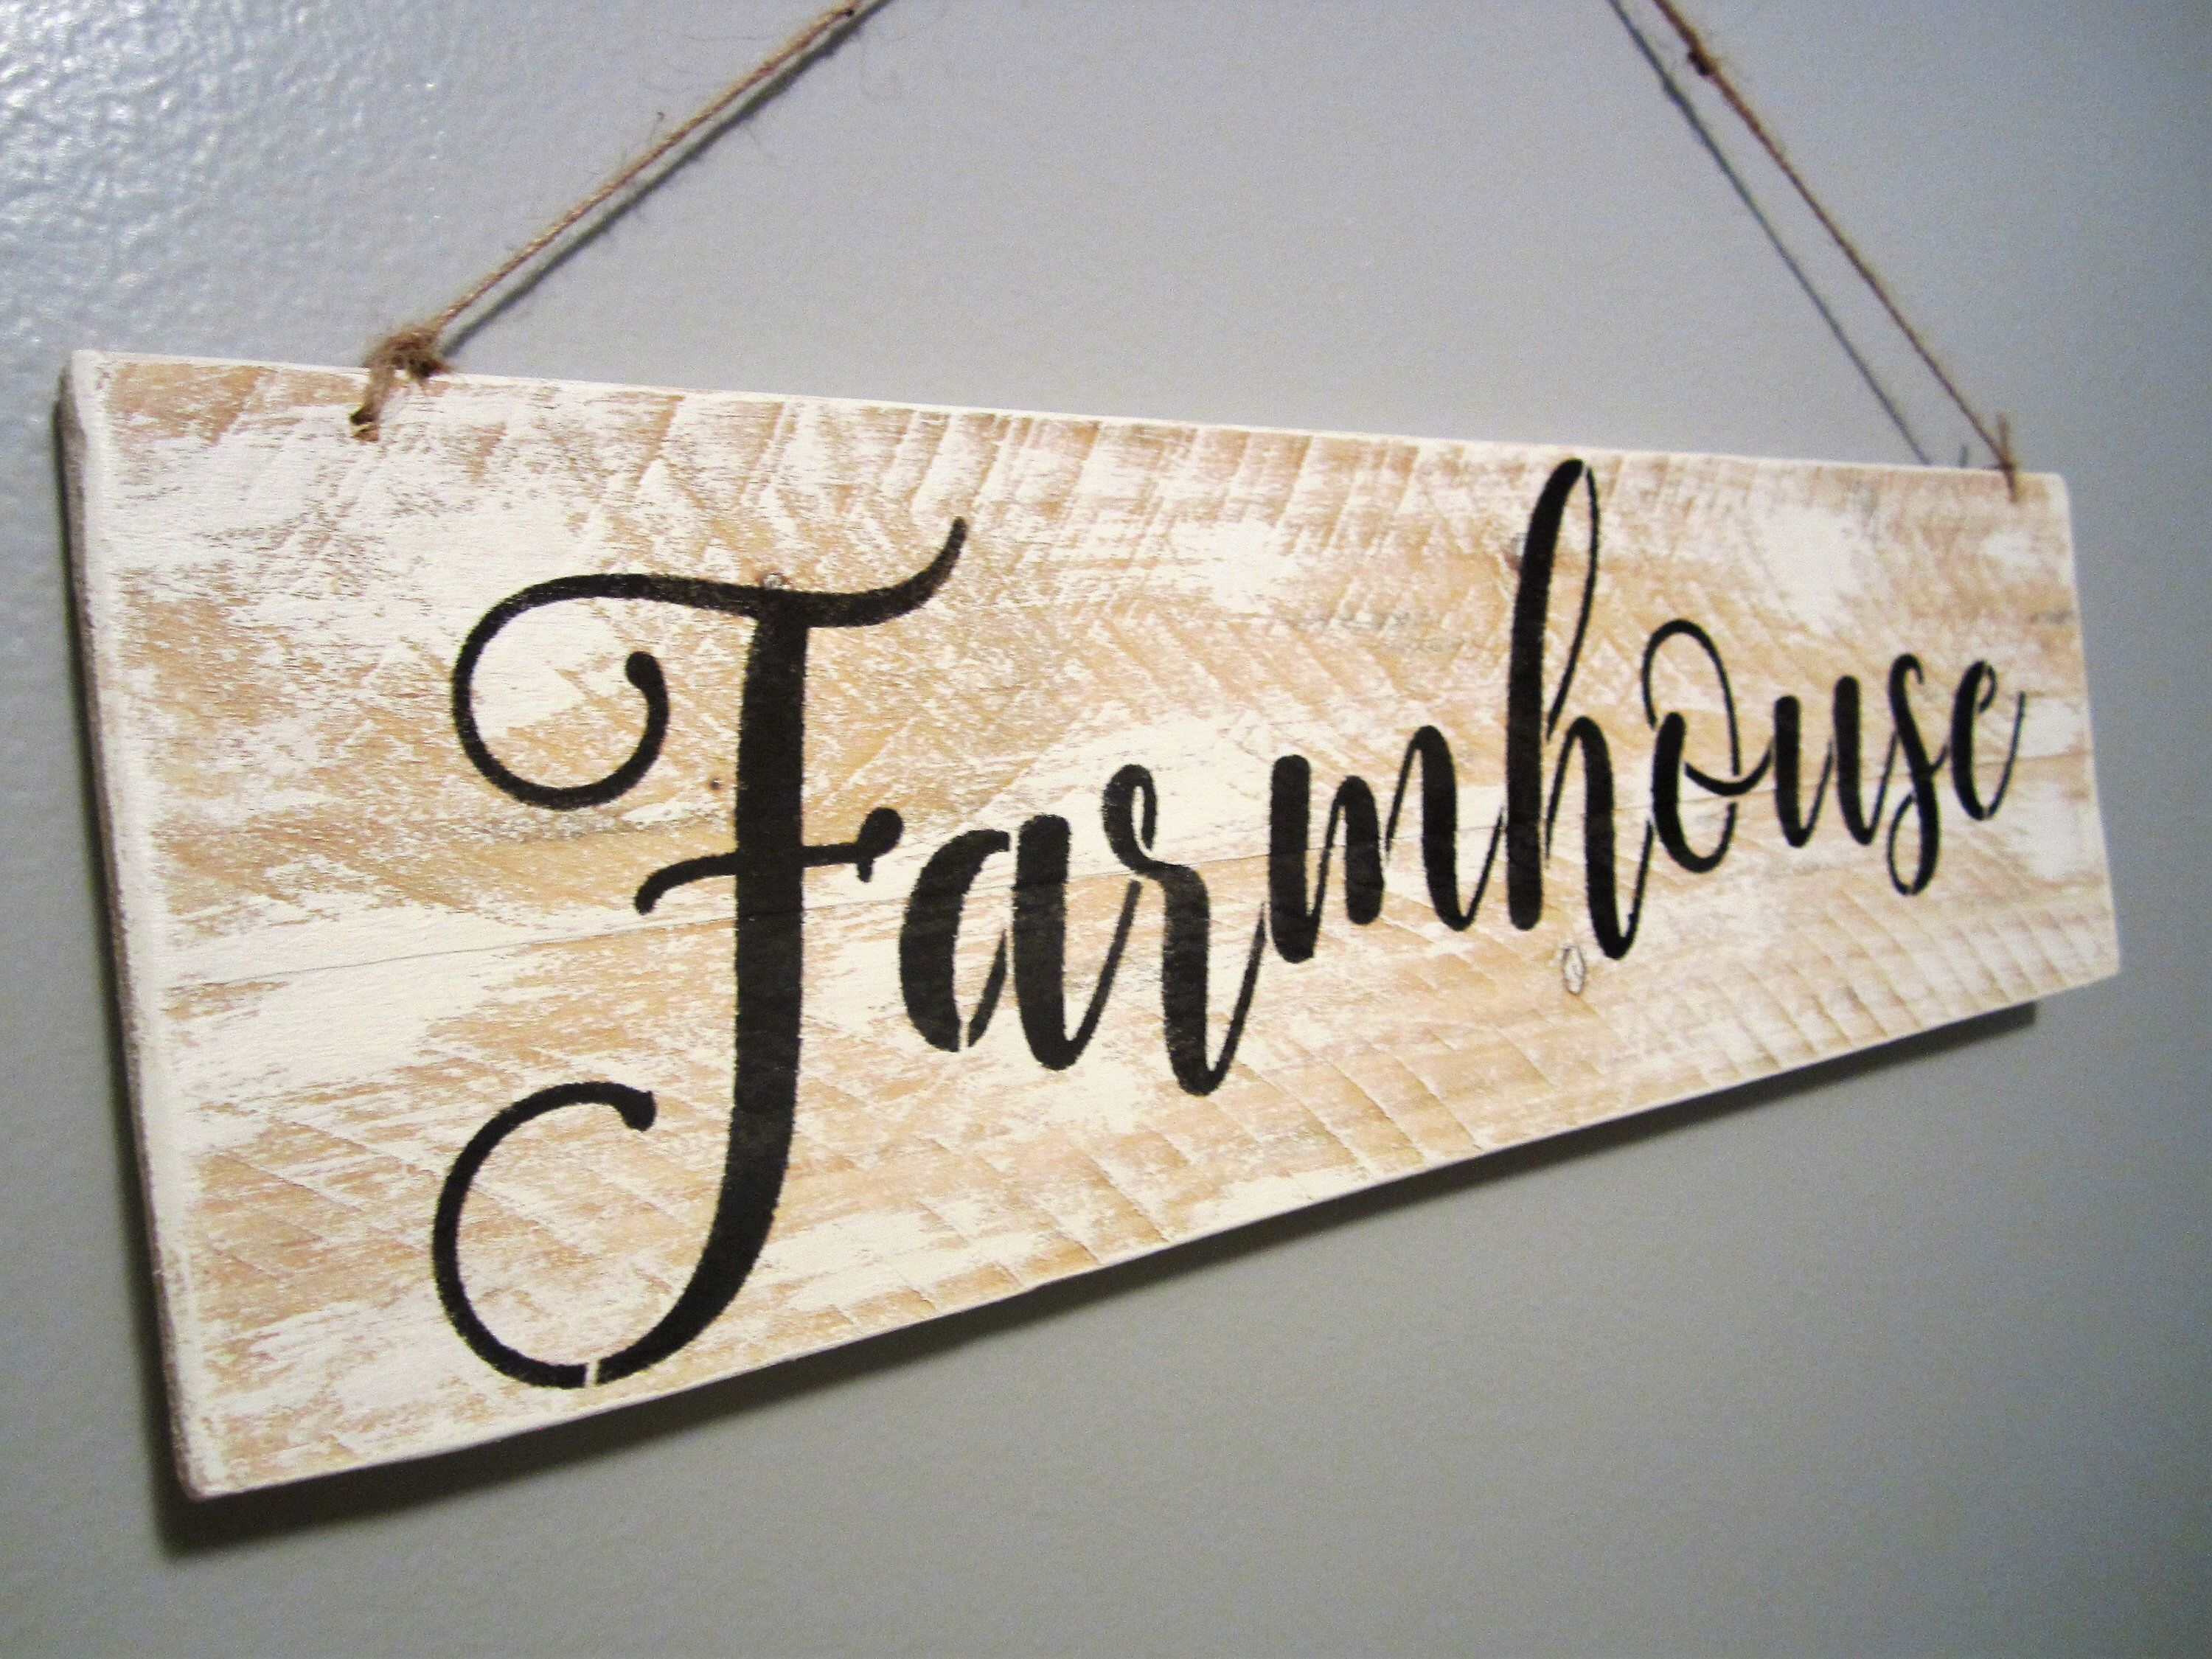 Farmhouse Sign Farmhouse Decor Farmhouse Style Farmhouse Wall Decor Farmhouse Signs Modern Farmhouse Farmhouse Kitchen Wood Farmhouse Sign Farmhouse Wall Decor Farmhouse Decor Custom Wooden Signs